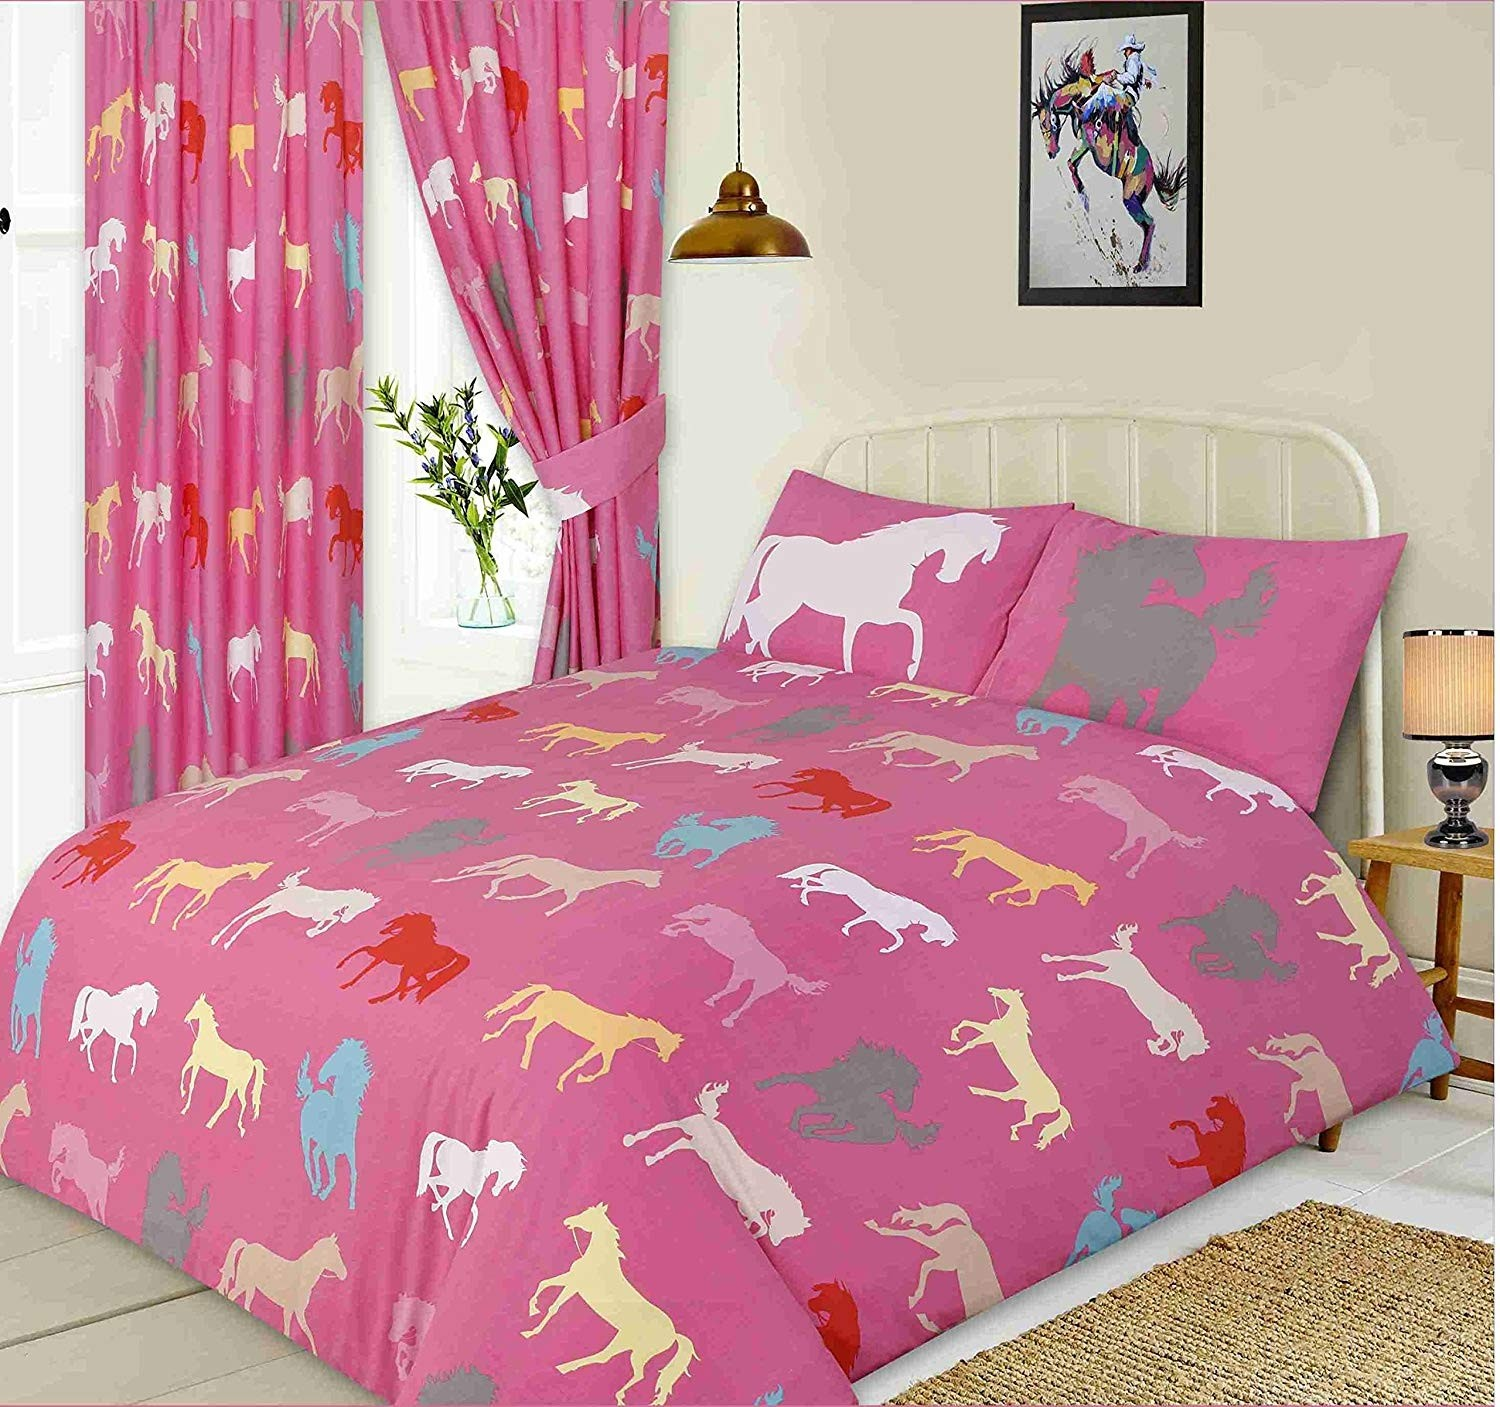 Horse Silhouette Design Pink King Size Bed Duvet Cover Bedding Set